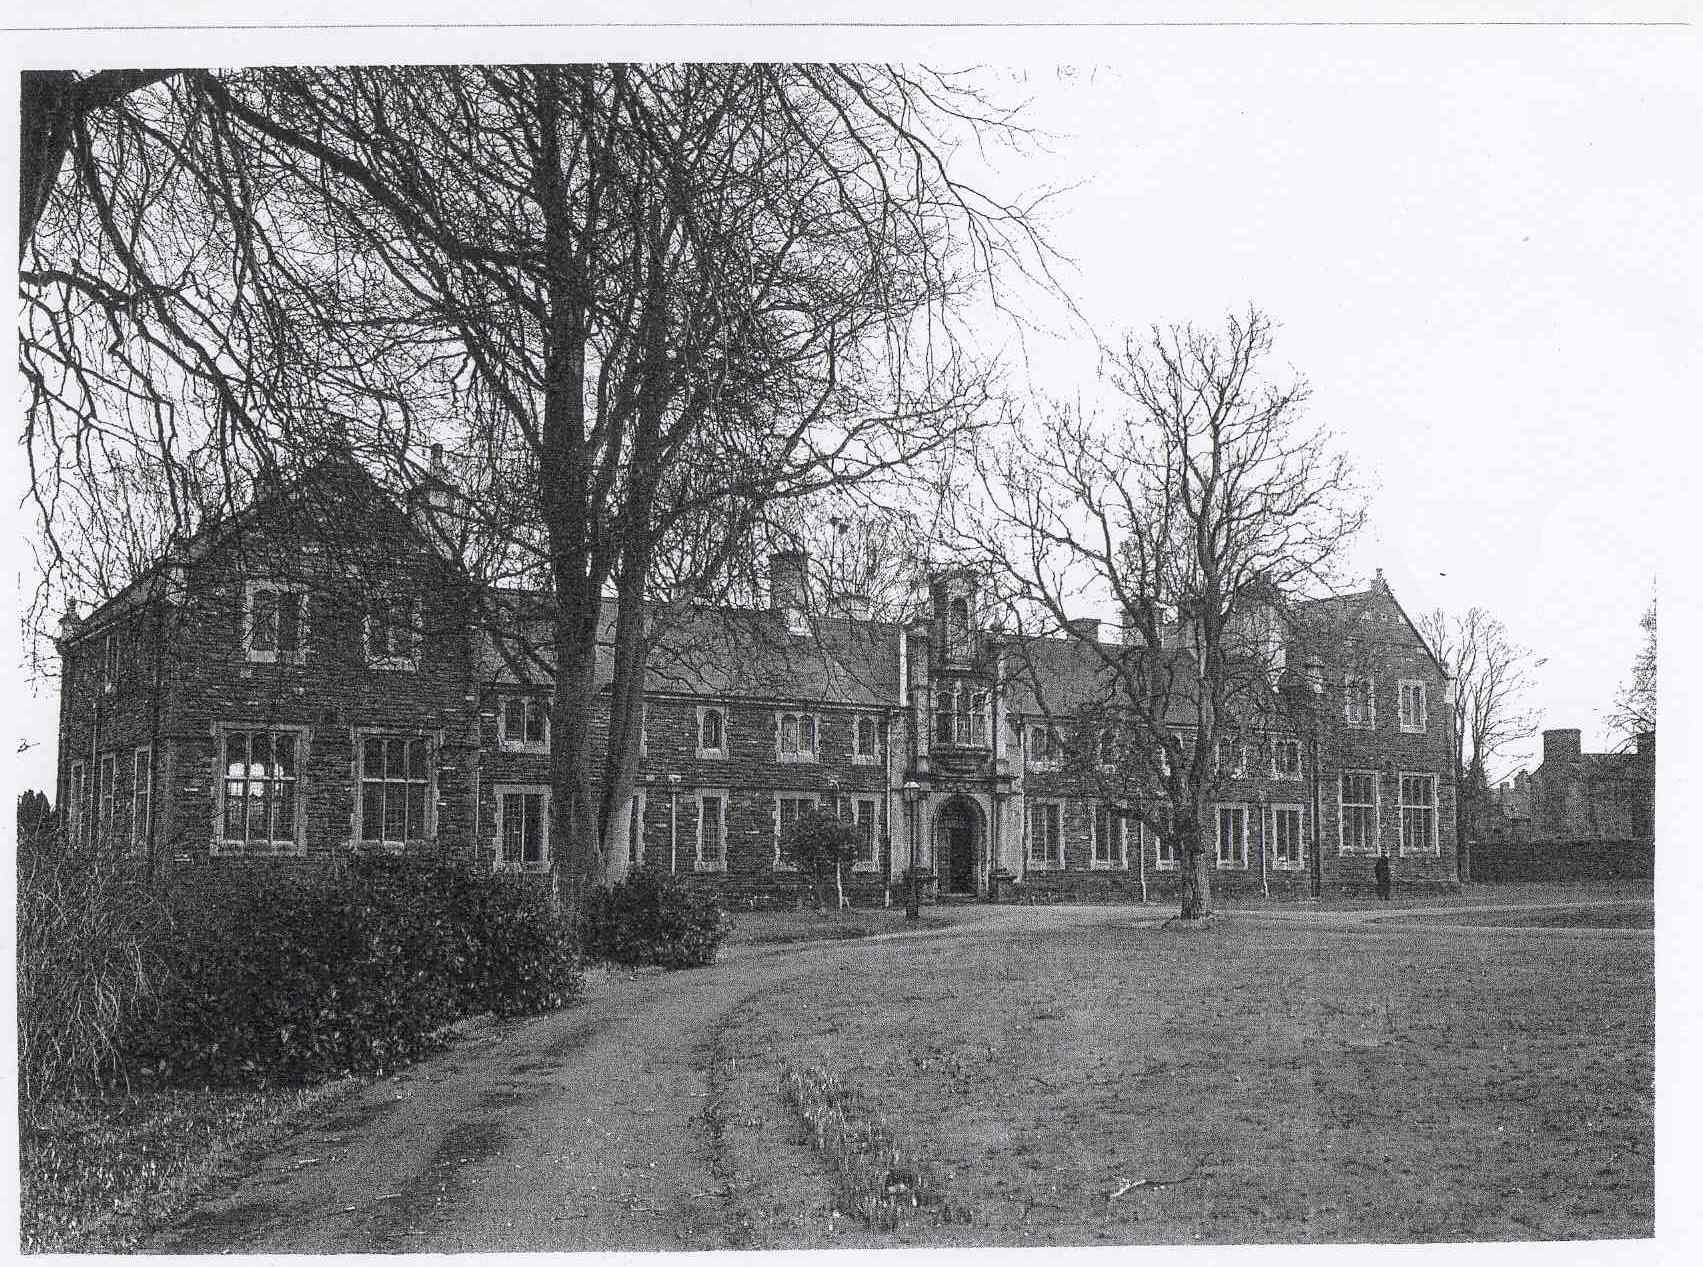 82 Lampeter. The Canterbury Building